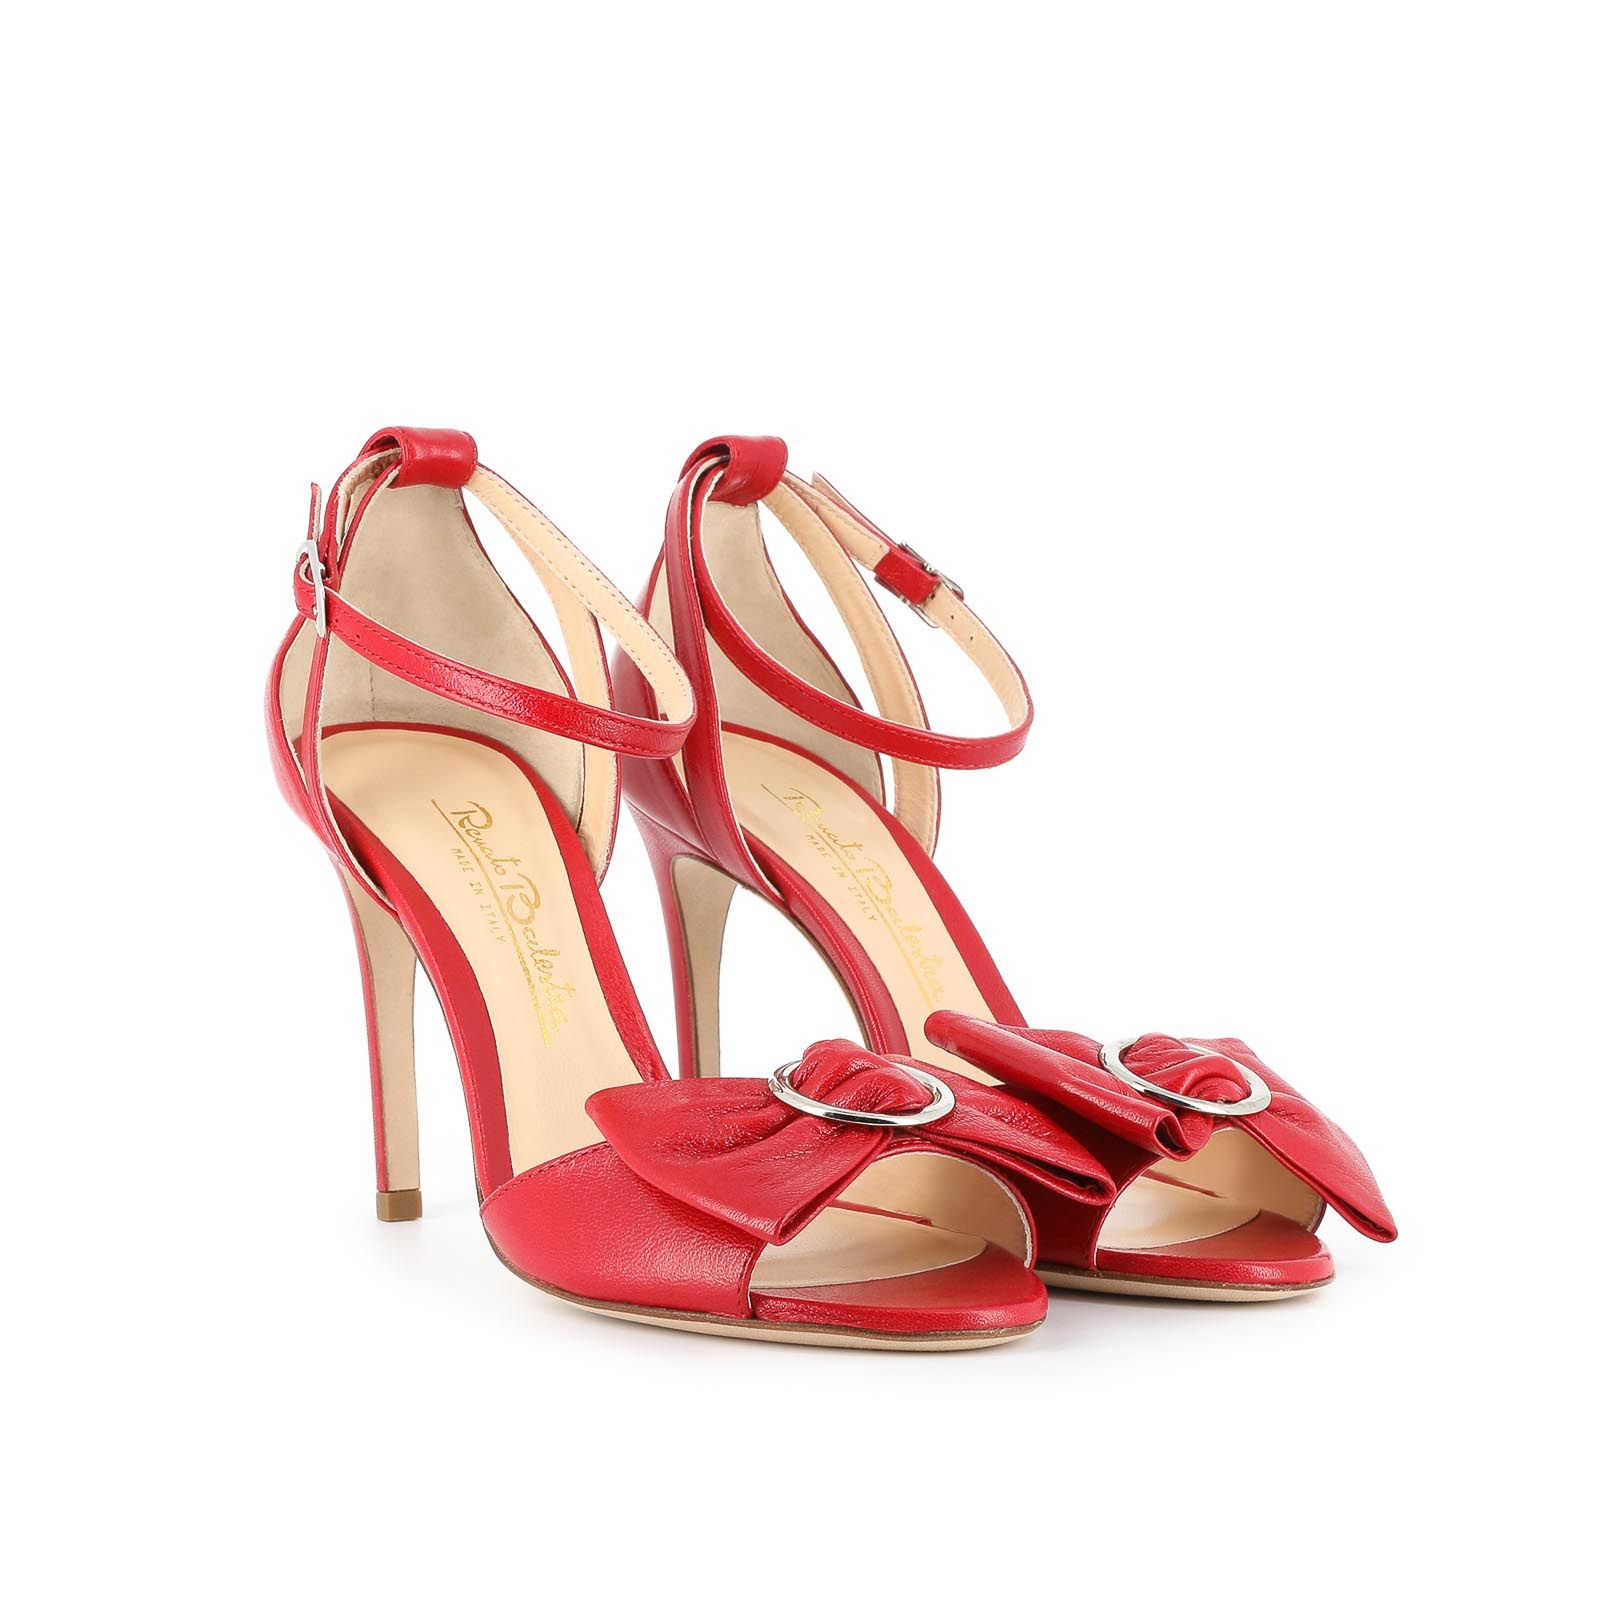 Red Marilyn Sandals